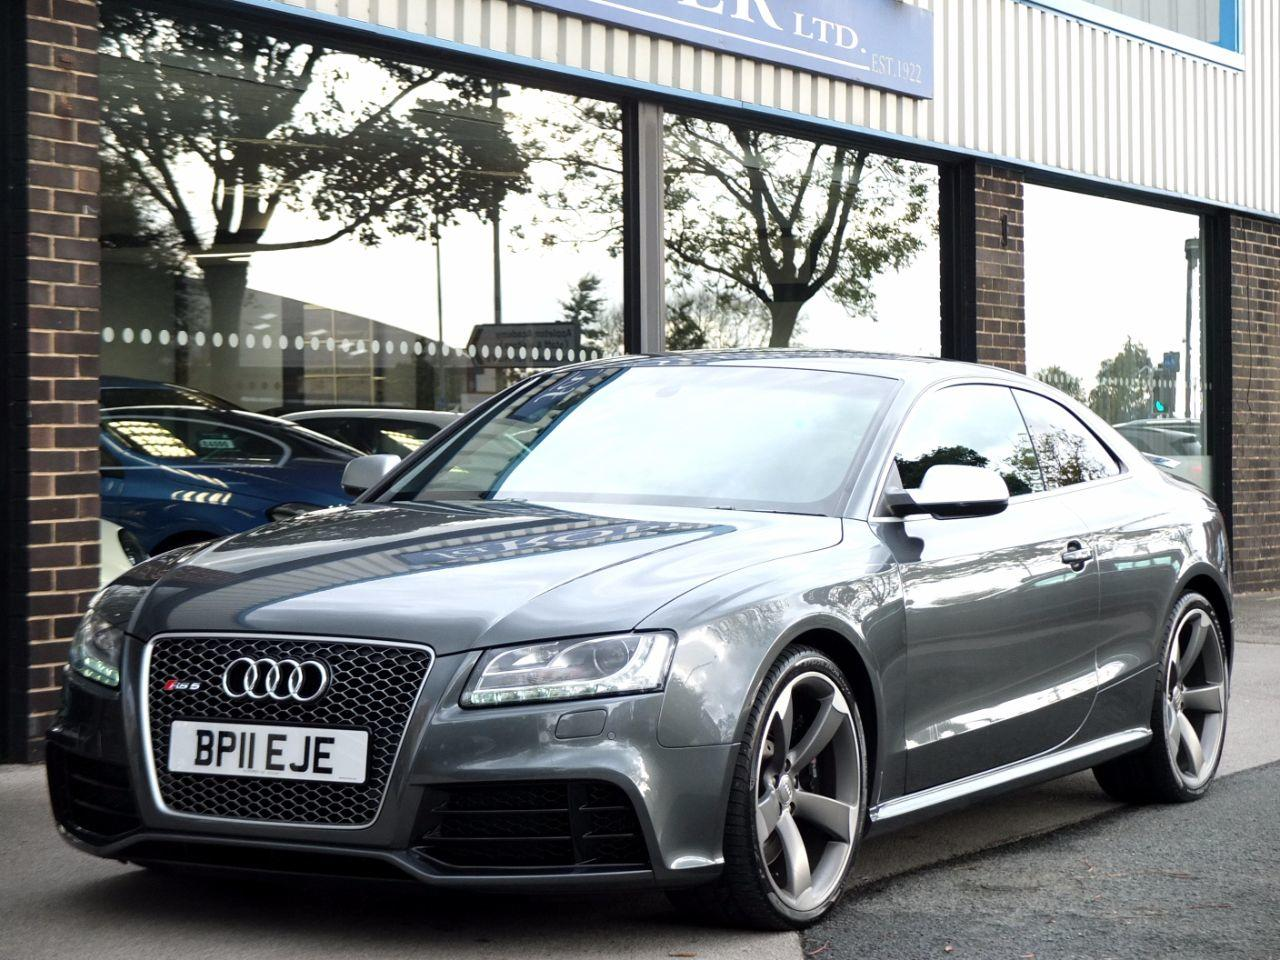 Audi RS5 4.2 FSI quattro S tronic Coupe Petrol Daytona Grey MetallicAudi RS5 4.2 FSI quattro S tronic Coupe Petrol Daytona Grey Metallic at fa Roper Ltd Bradford